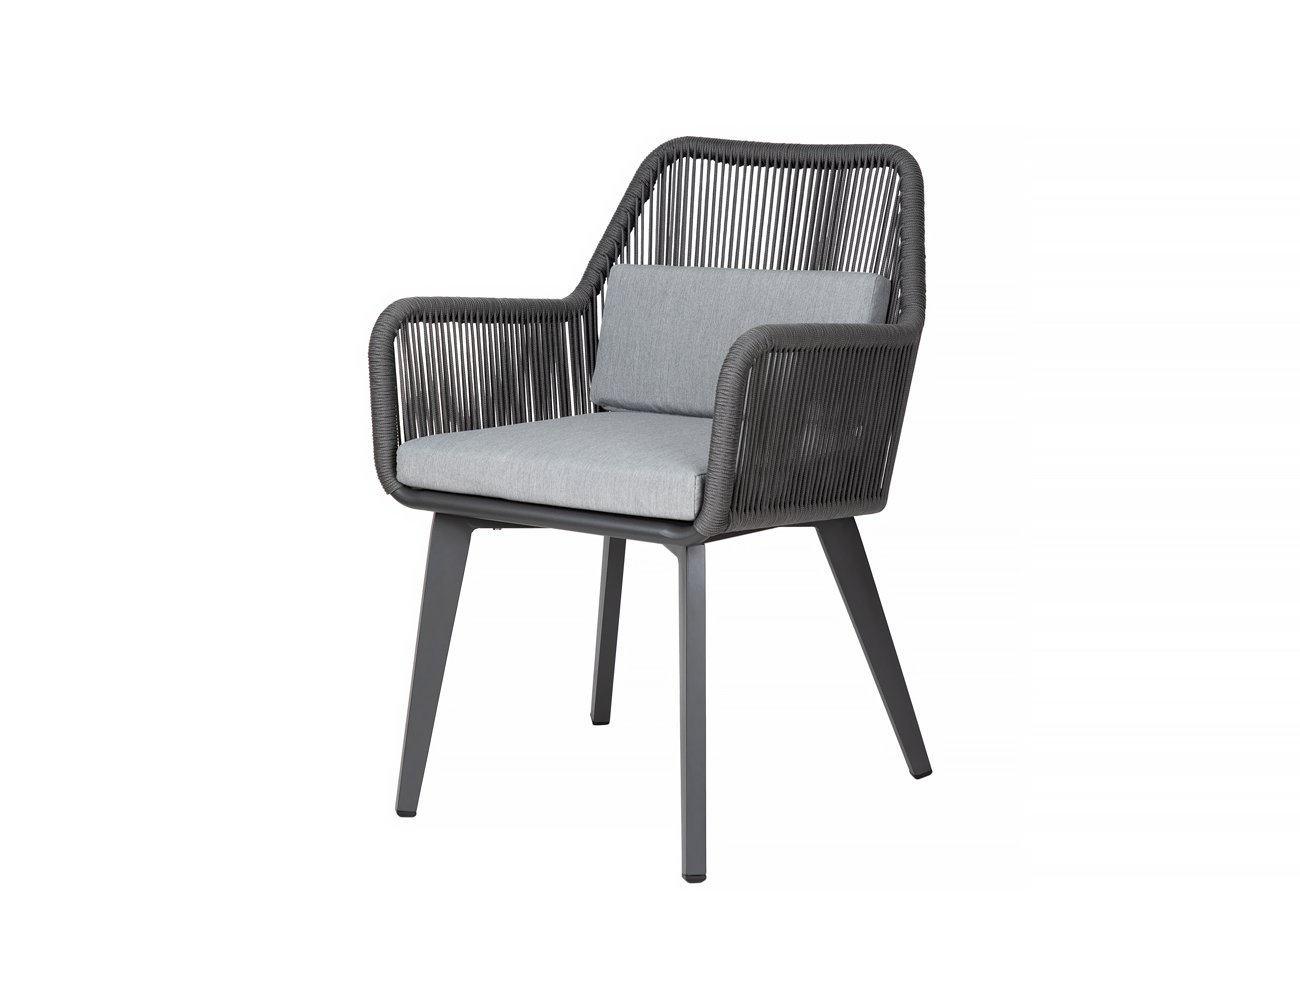 Falcon Aluminium and Rope Outdoor Dining Chair